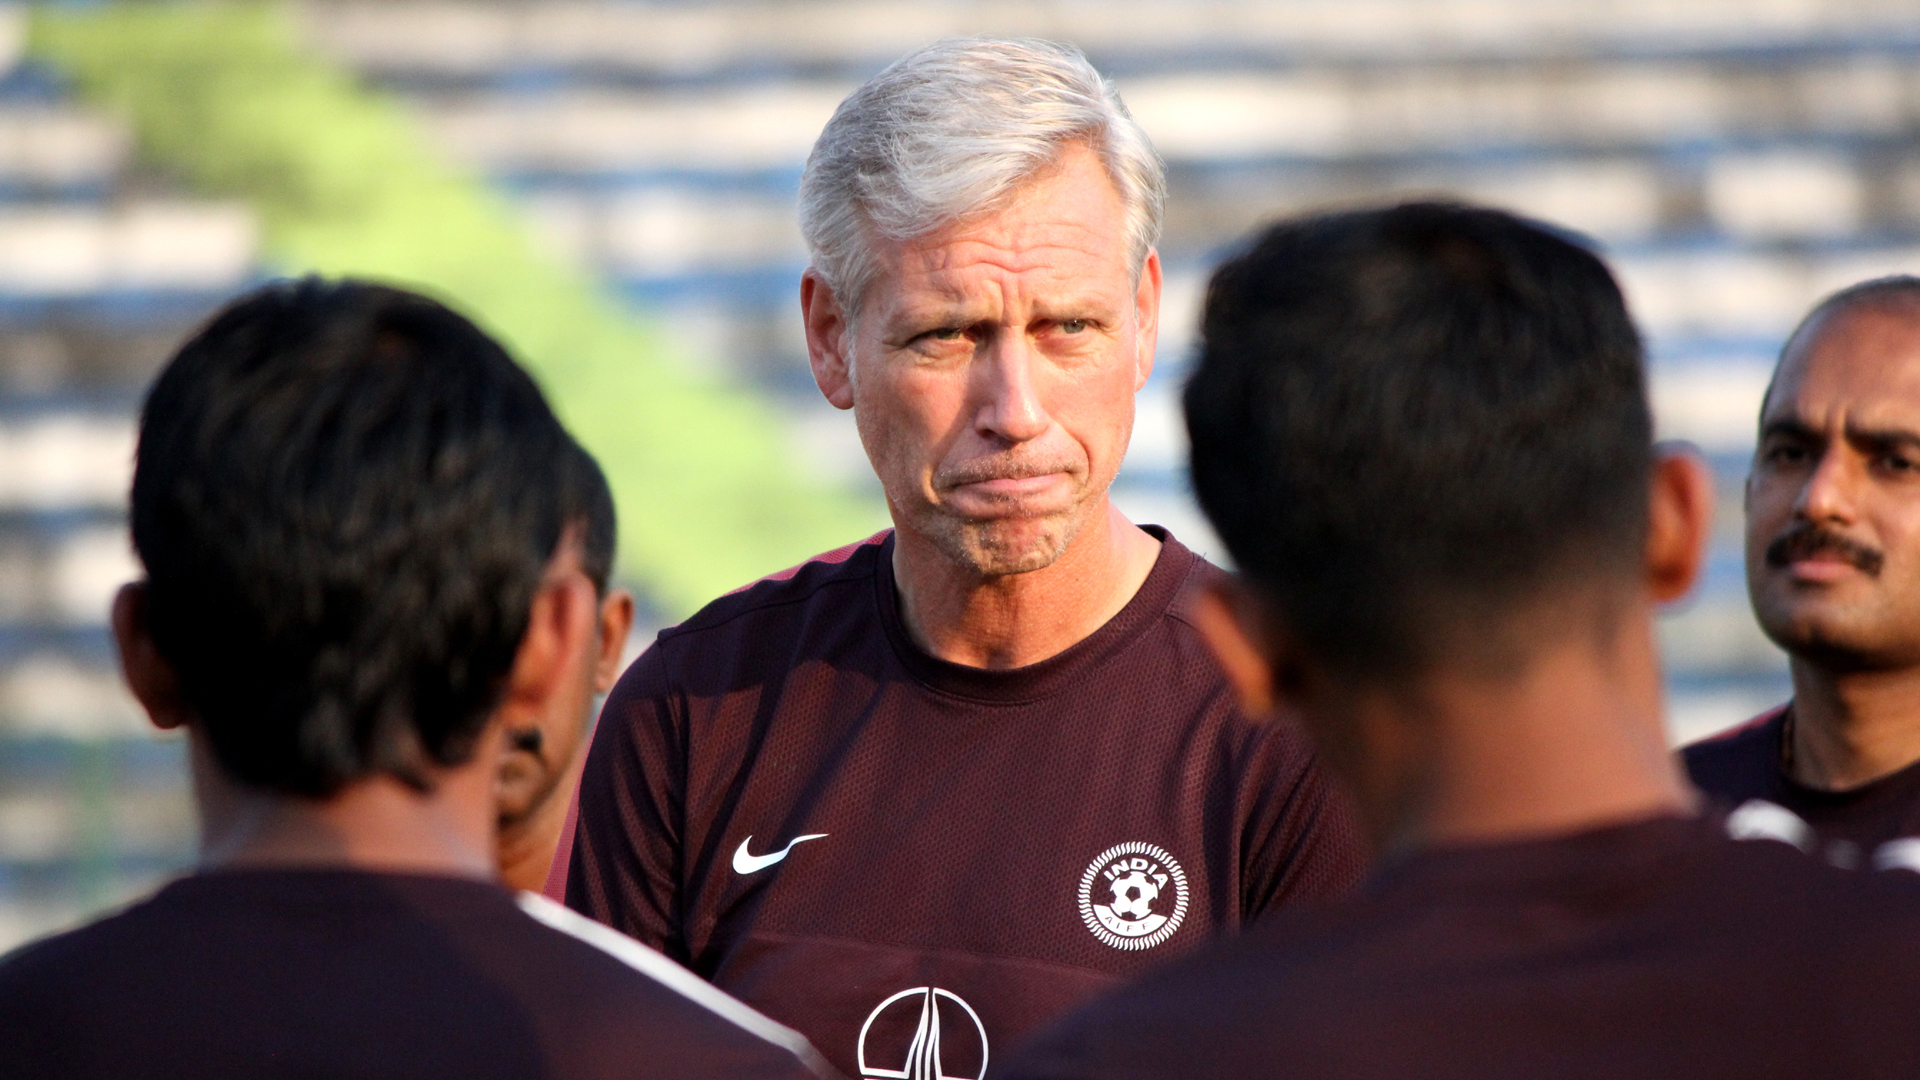 2019 AFC Asian Cup: India cannot afford repeat of post 2011 debacle following Stephen Constantine's exit